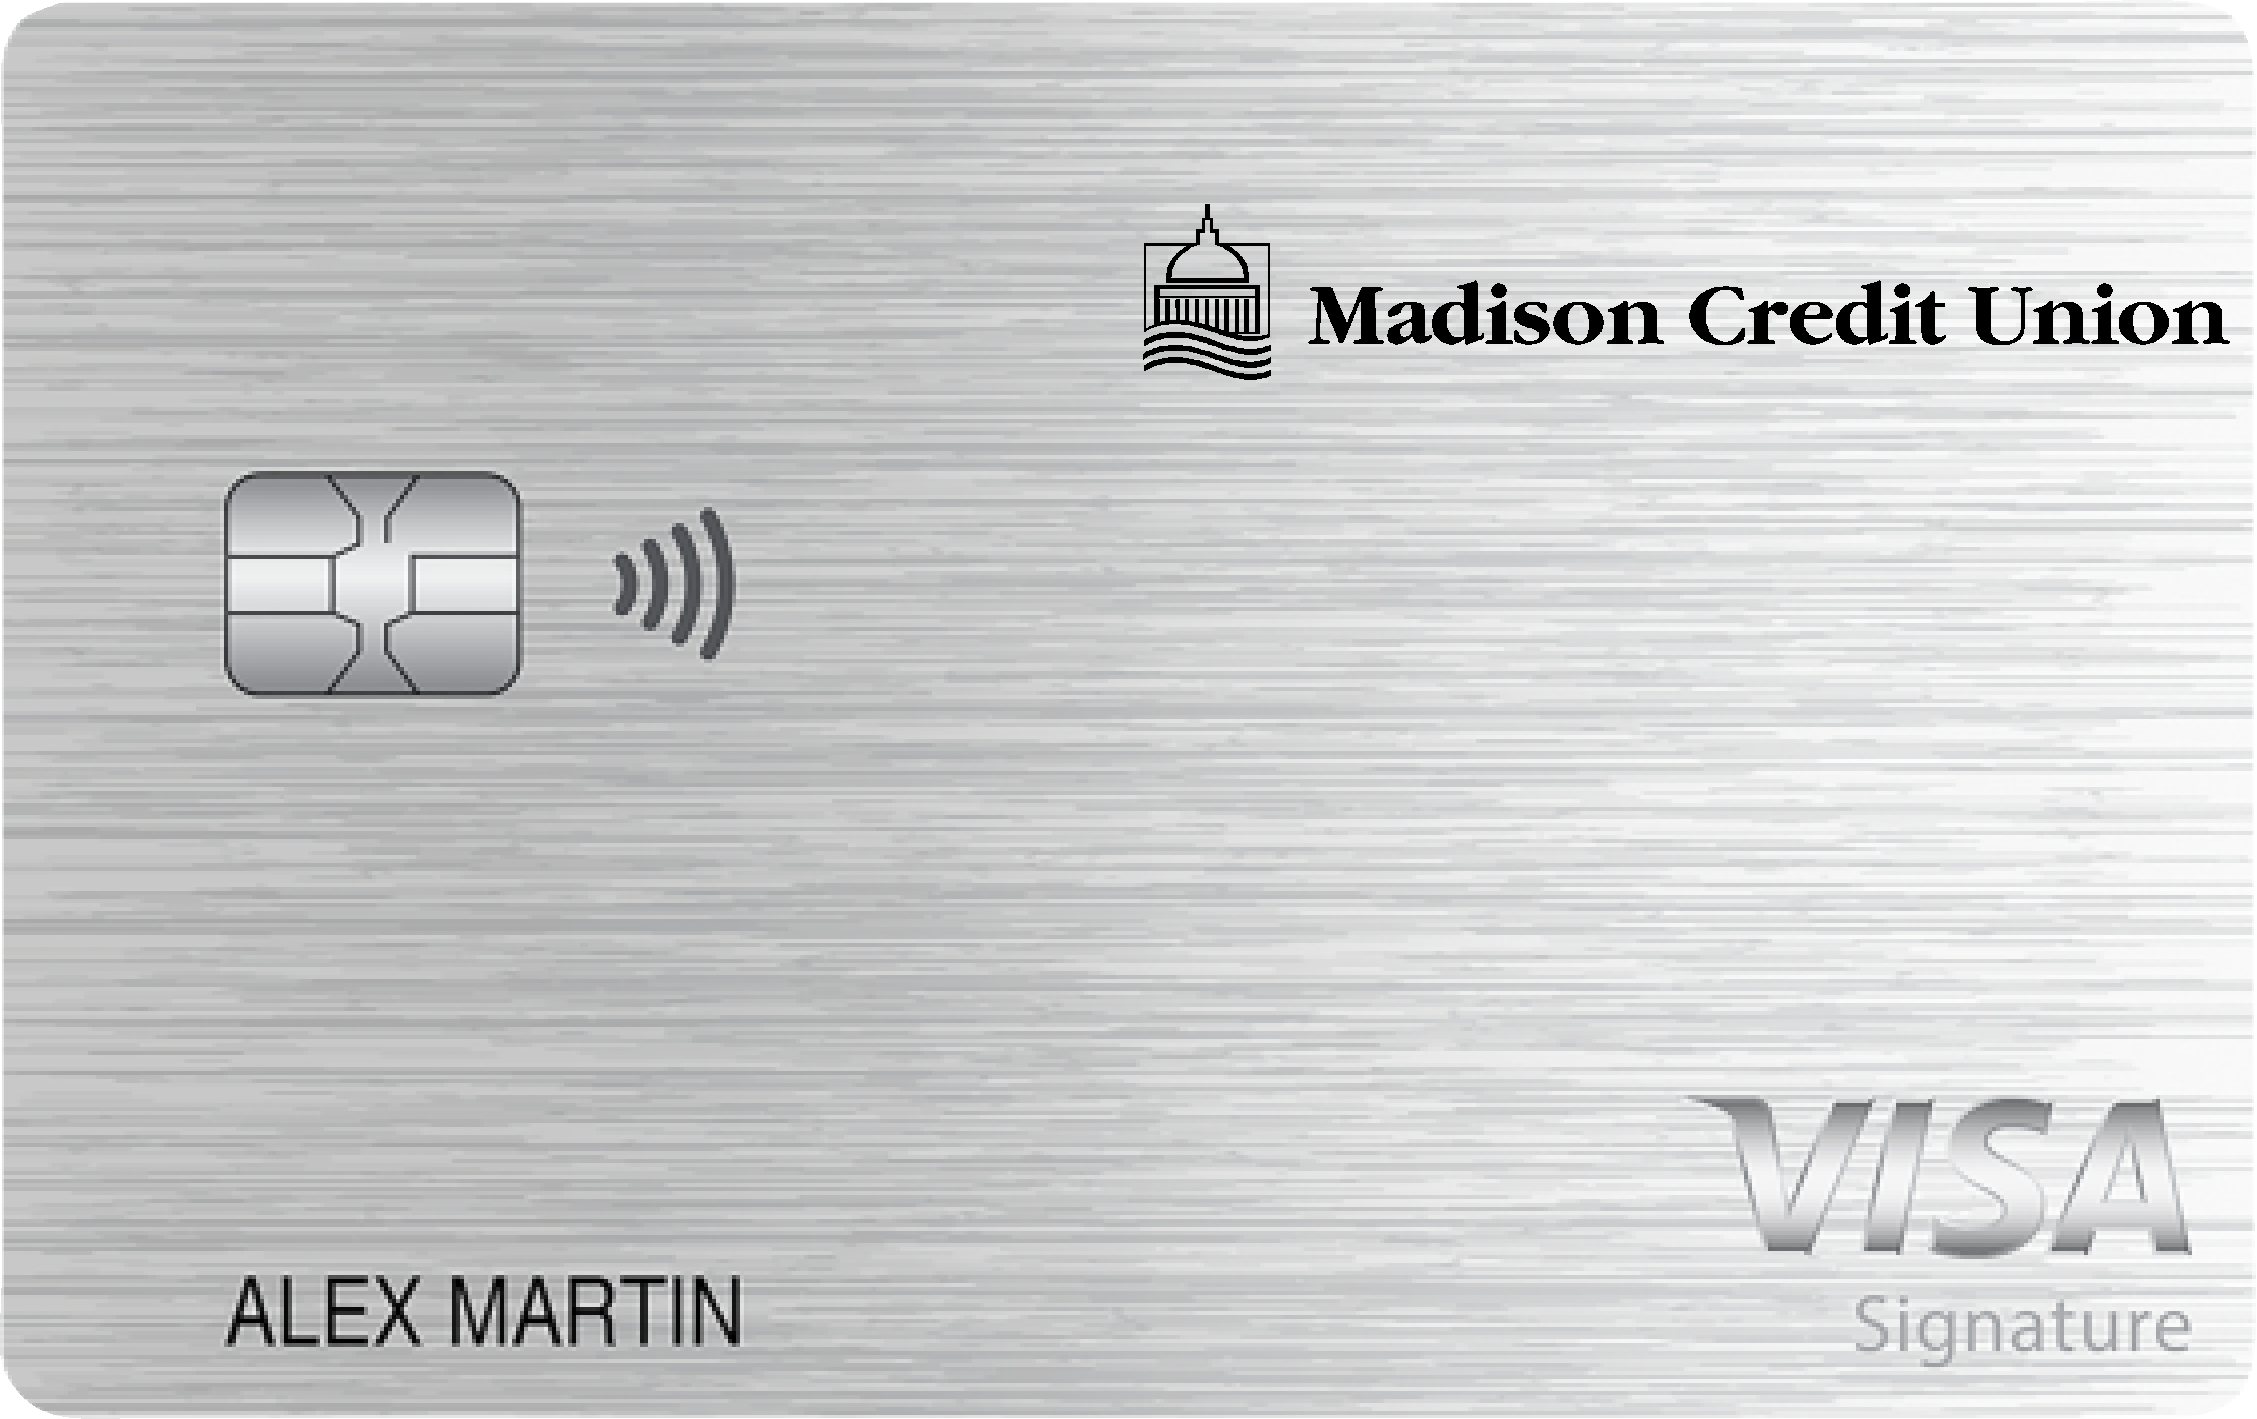 Madison Credit Union